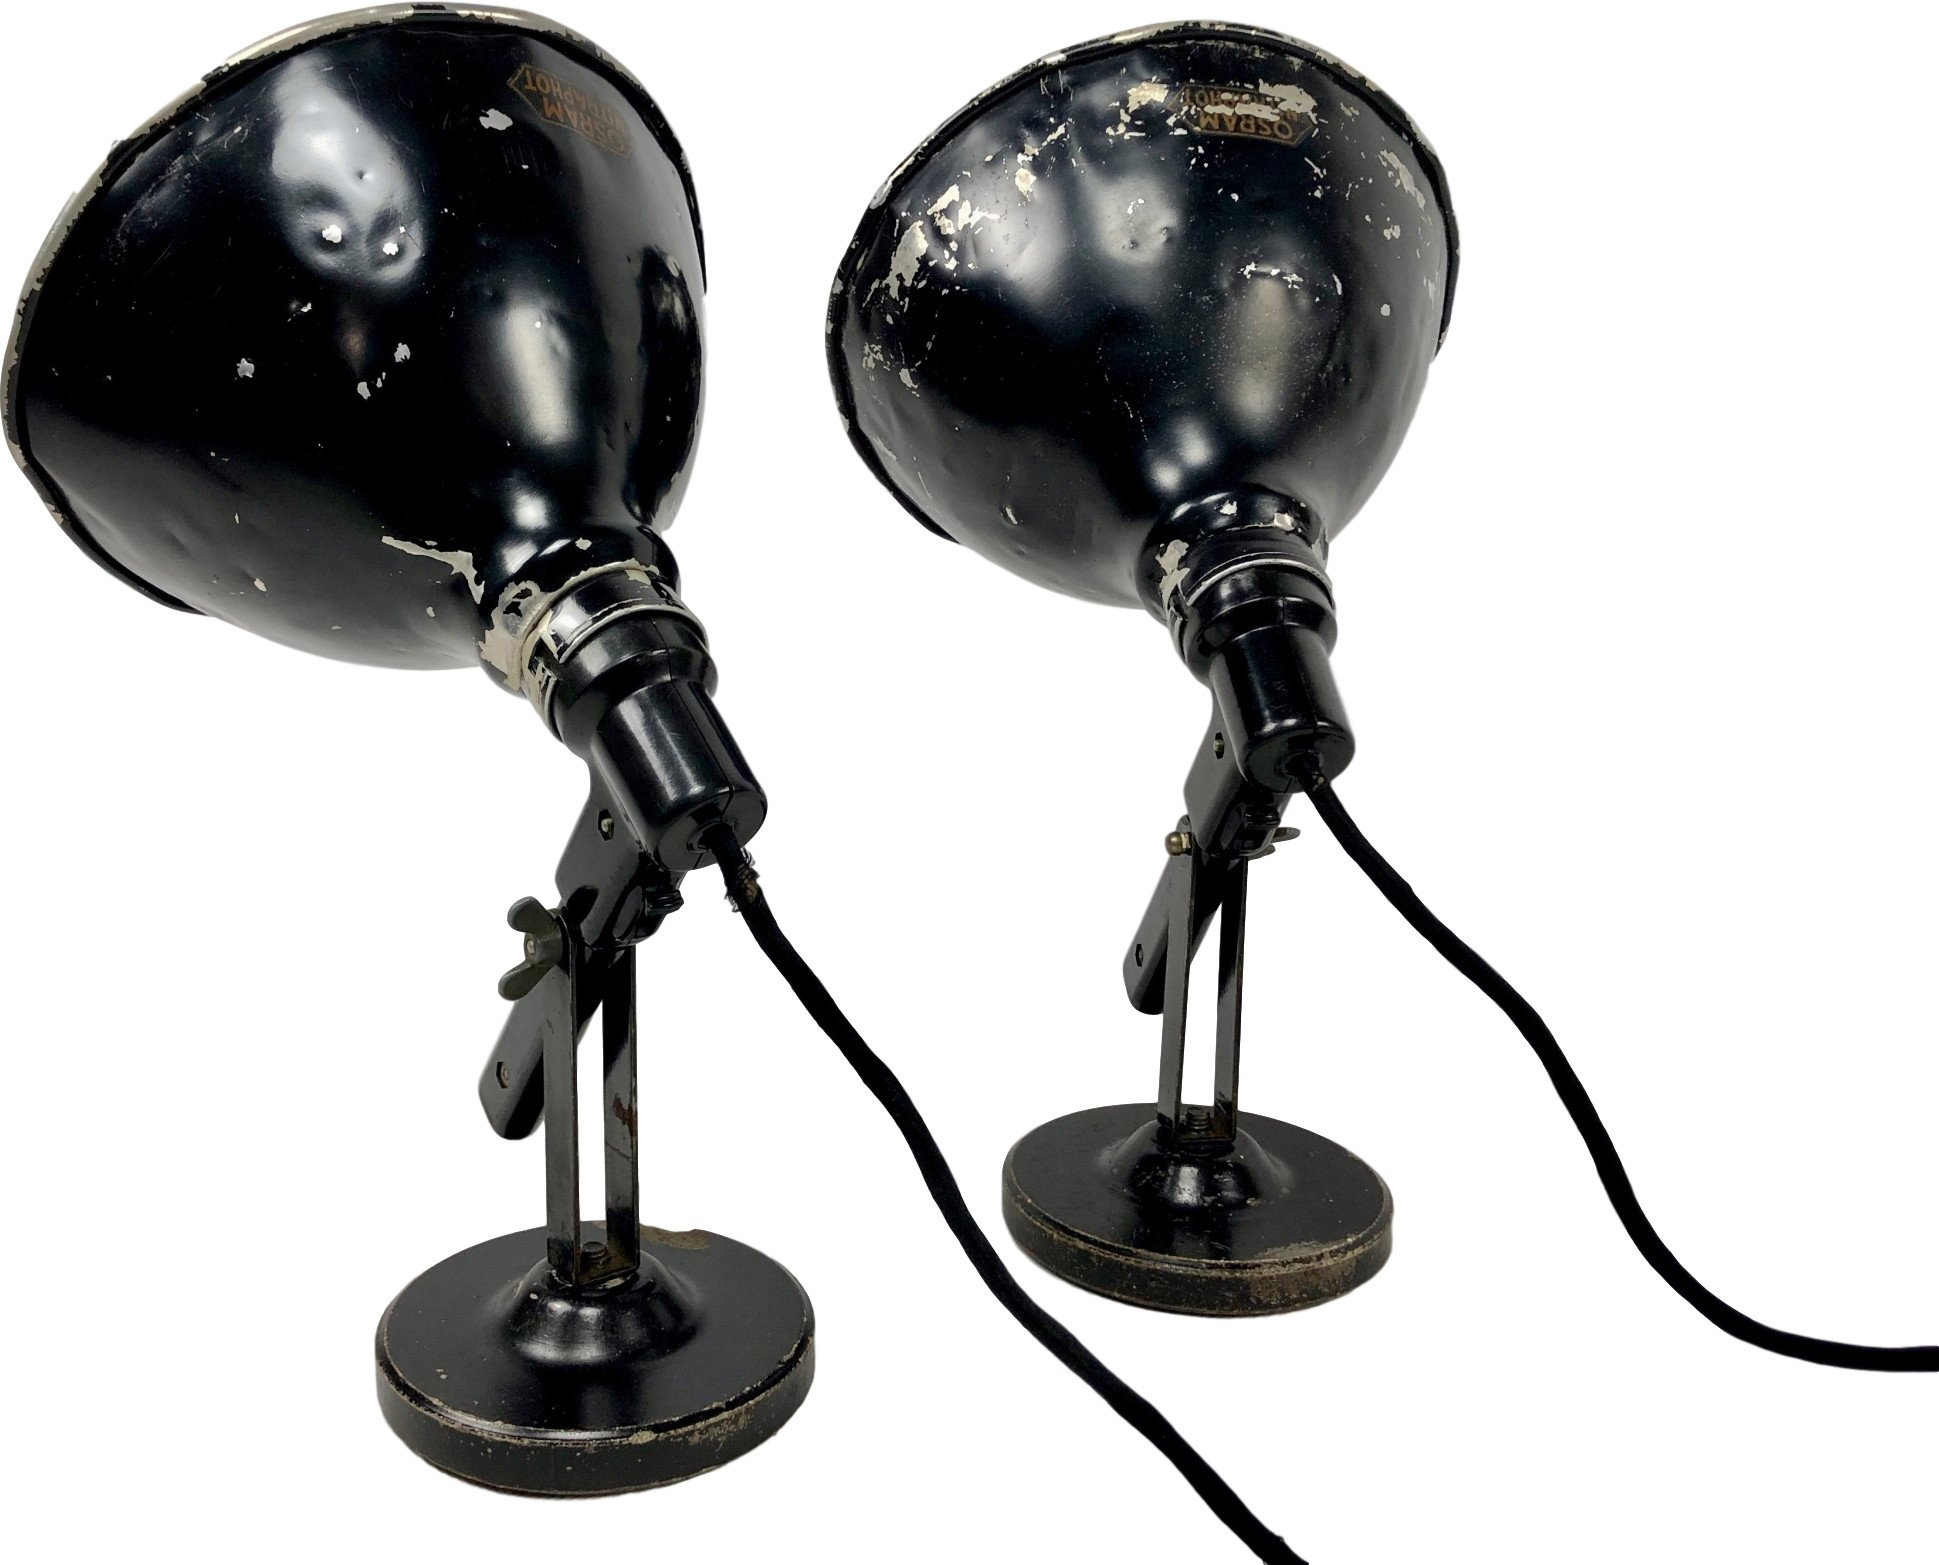 Pair of Desk Lamps, Osram, Germany, 1920s